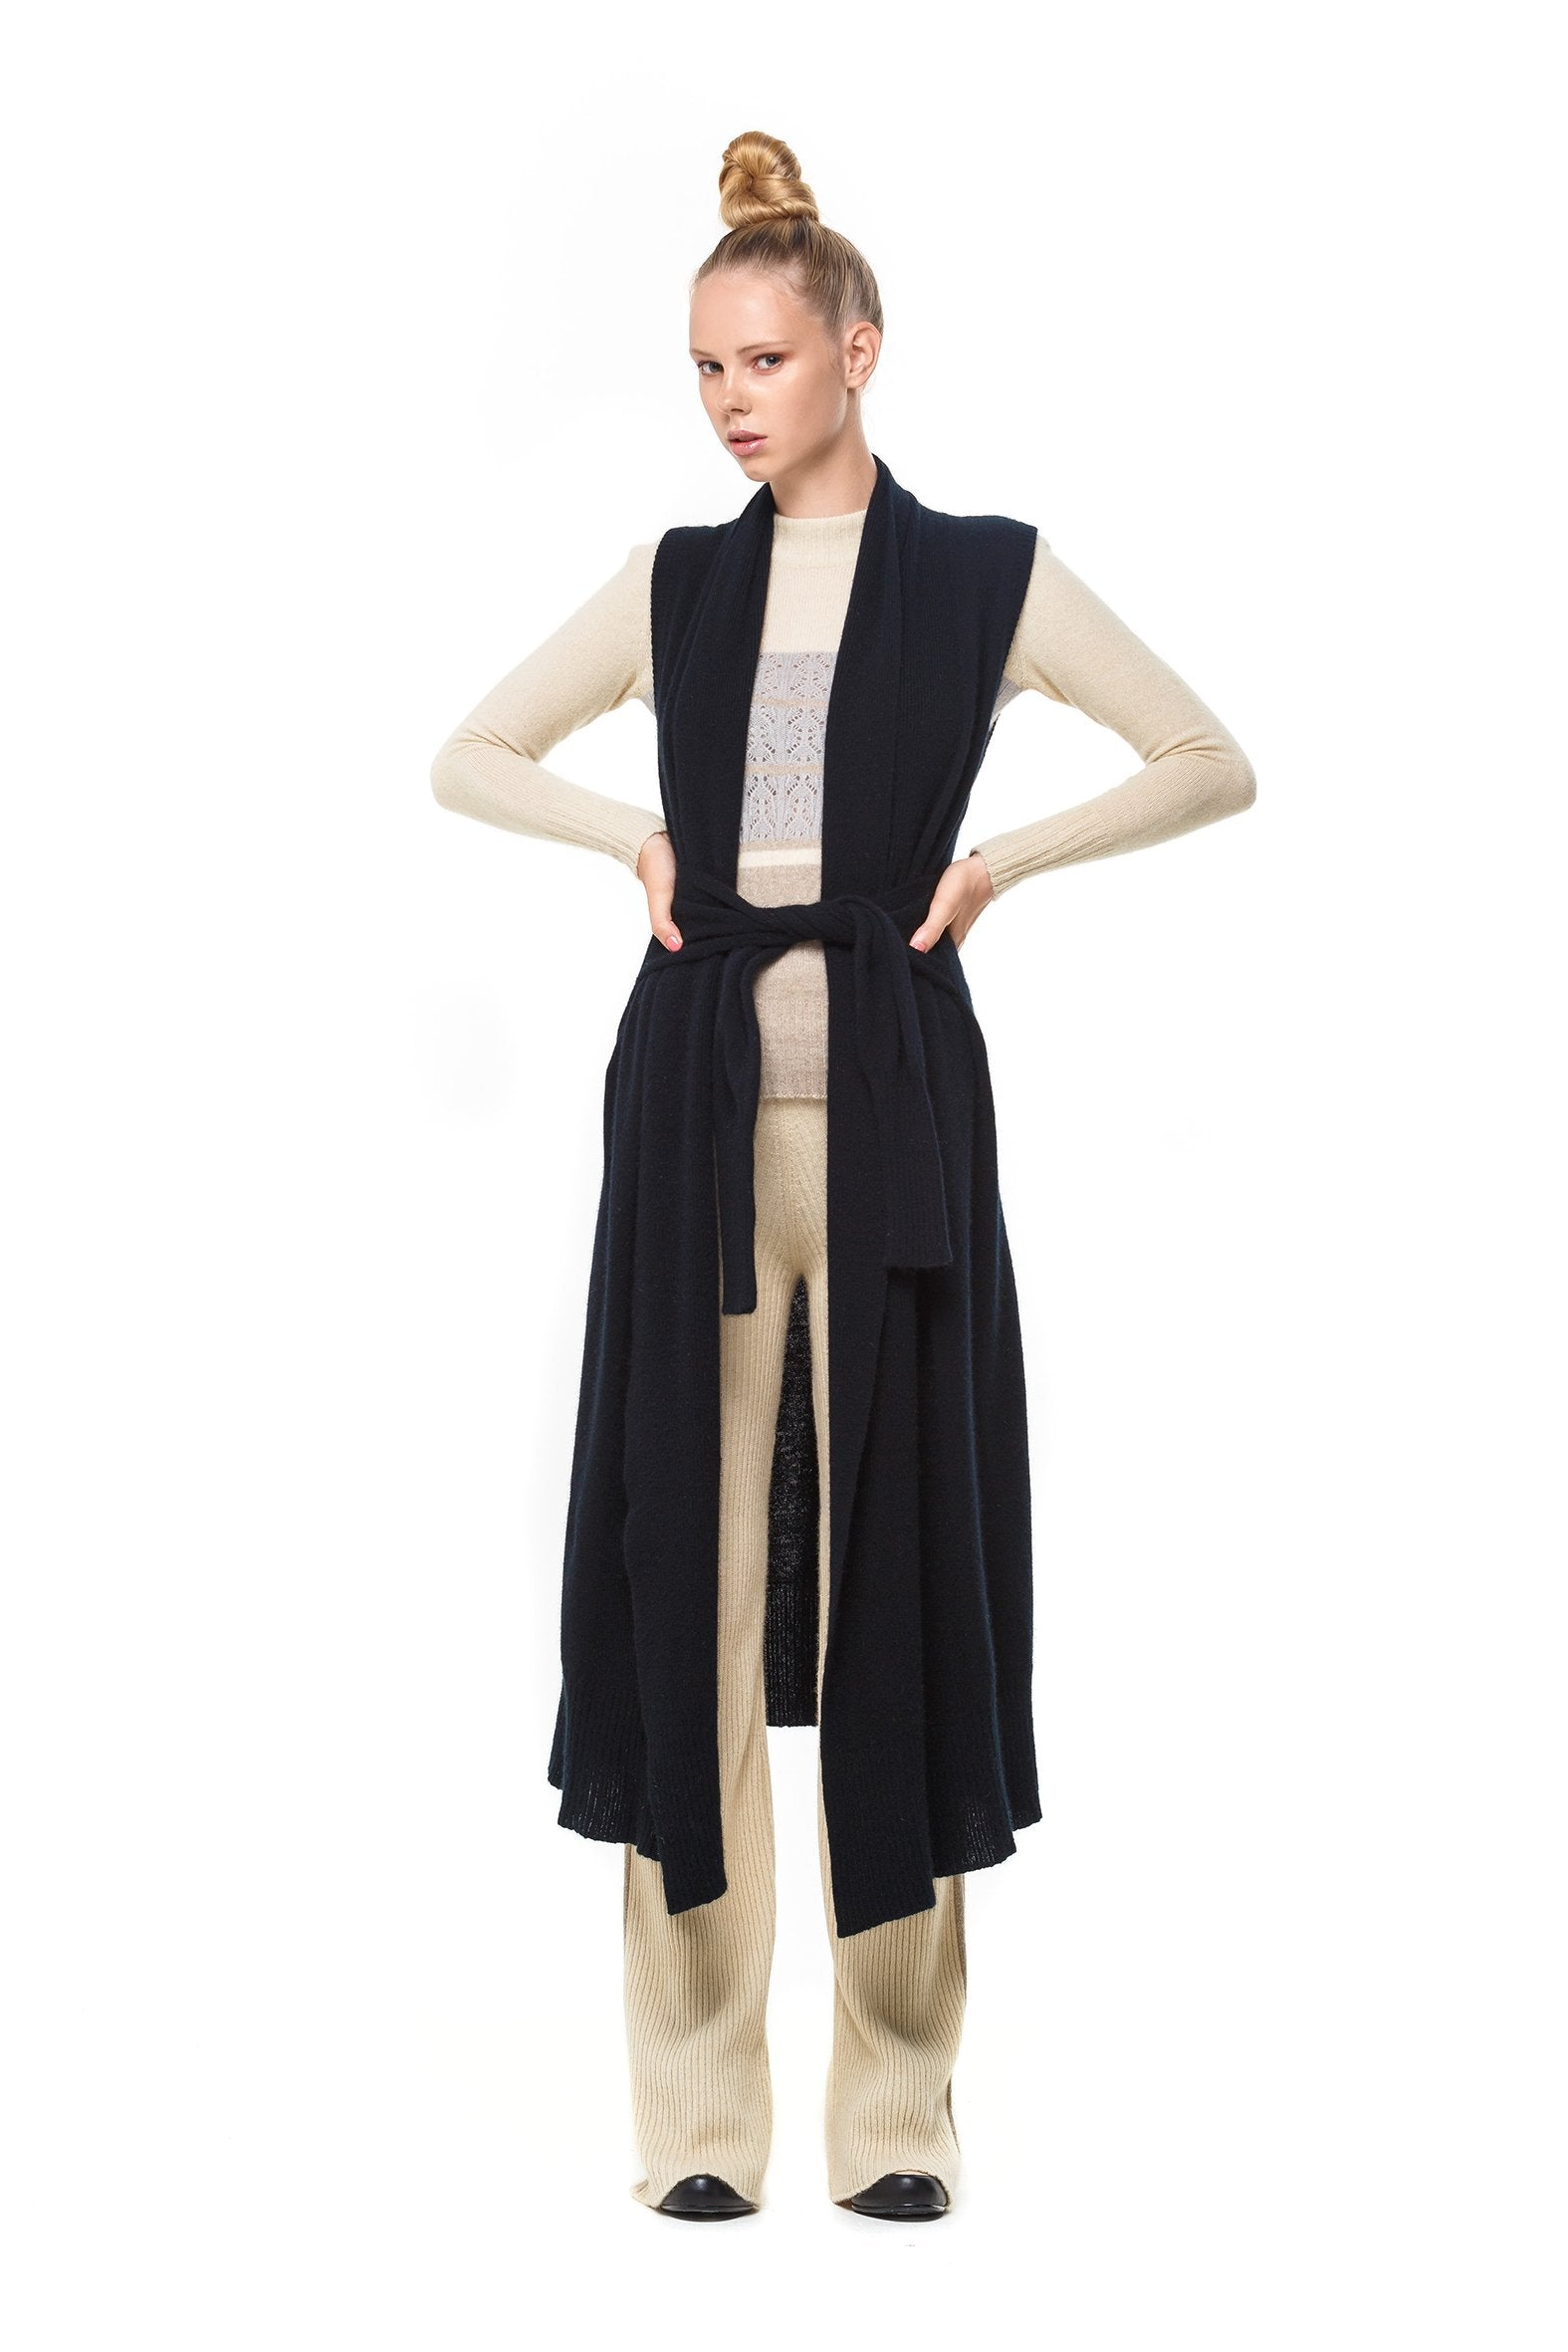 LONG VEST - Woolshed Gallery